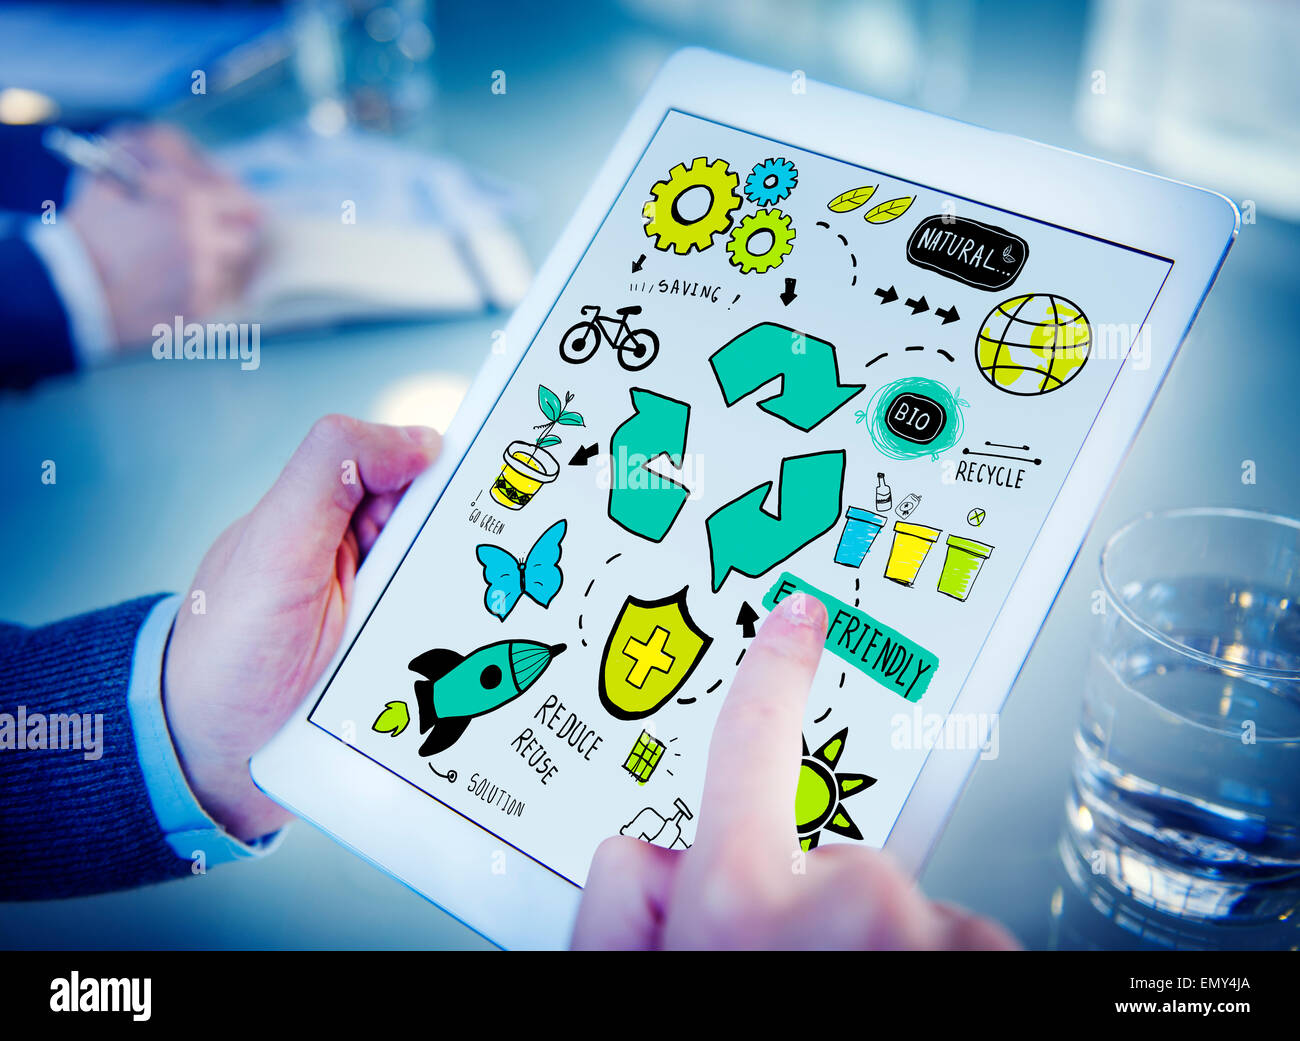 Recycle Reuse Reduce Bio Eco Friendly Environment Concept - Stock Image